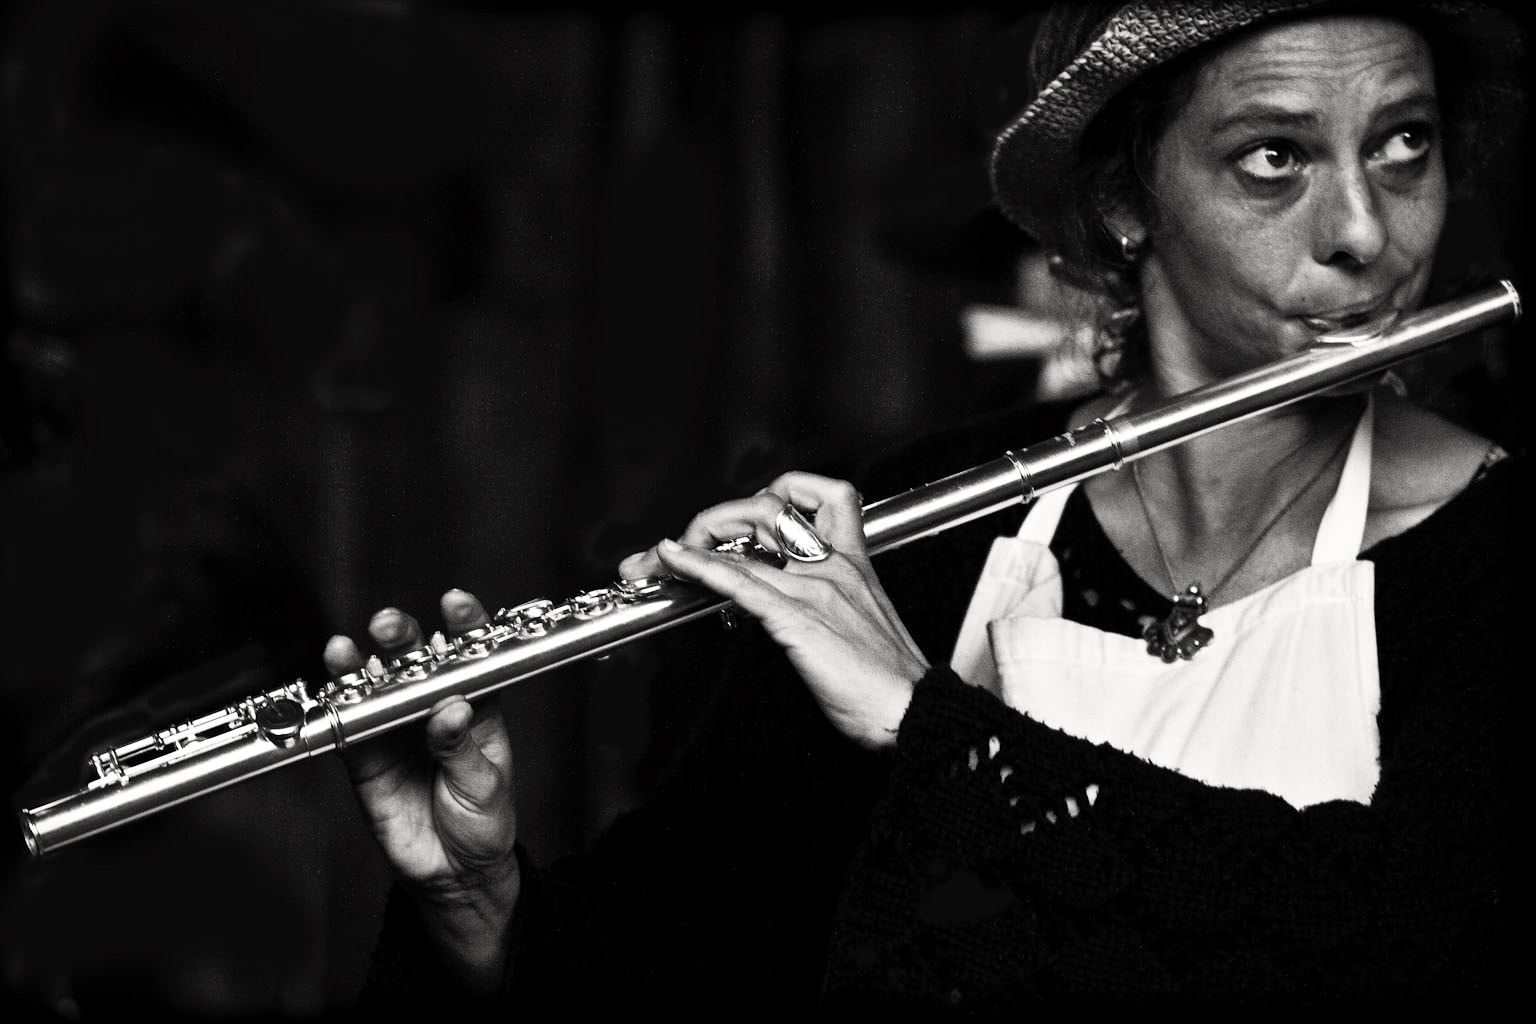 Photograph Music in the soul. by Laurence Penne on 500px